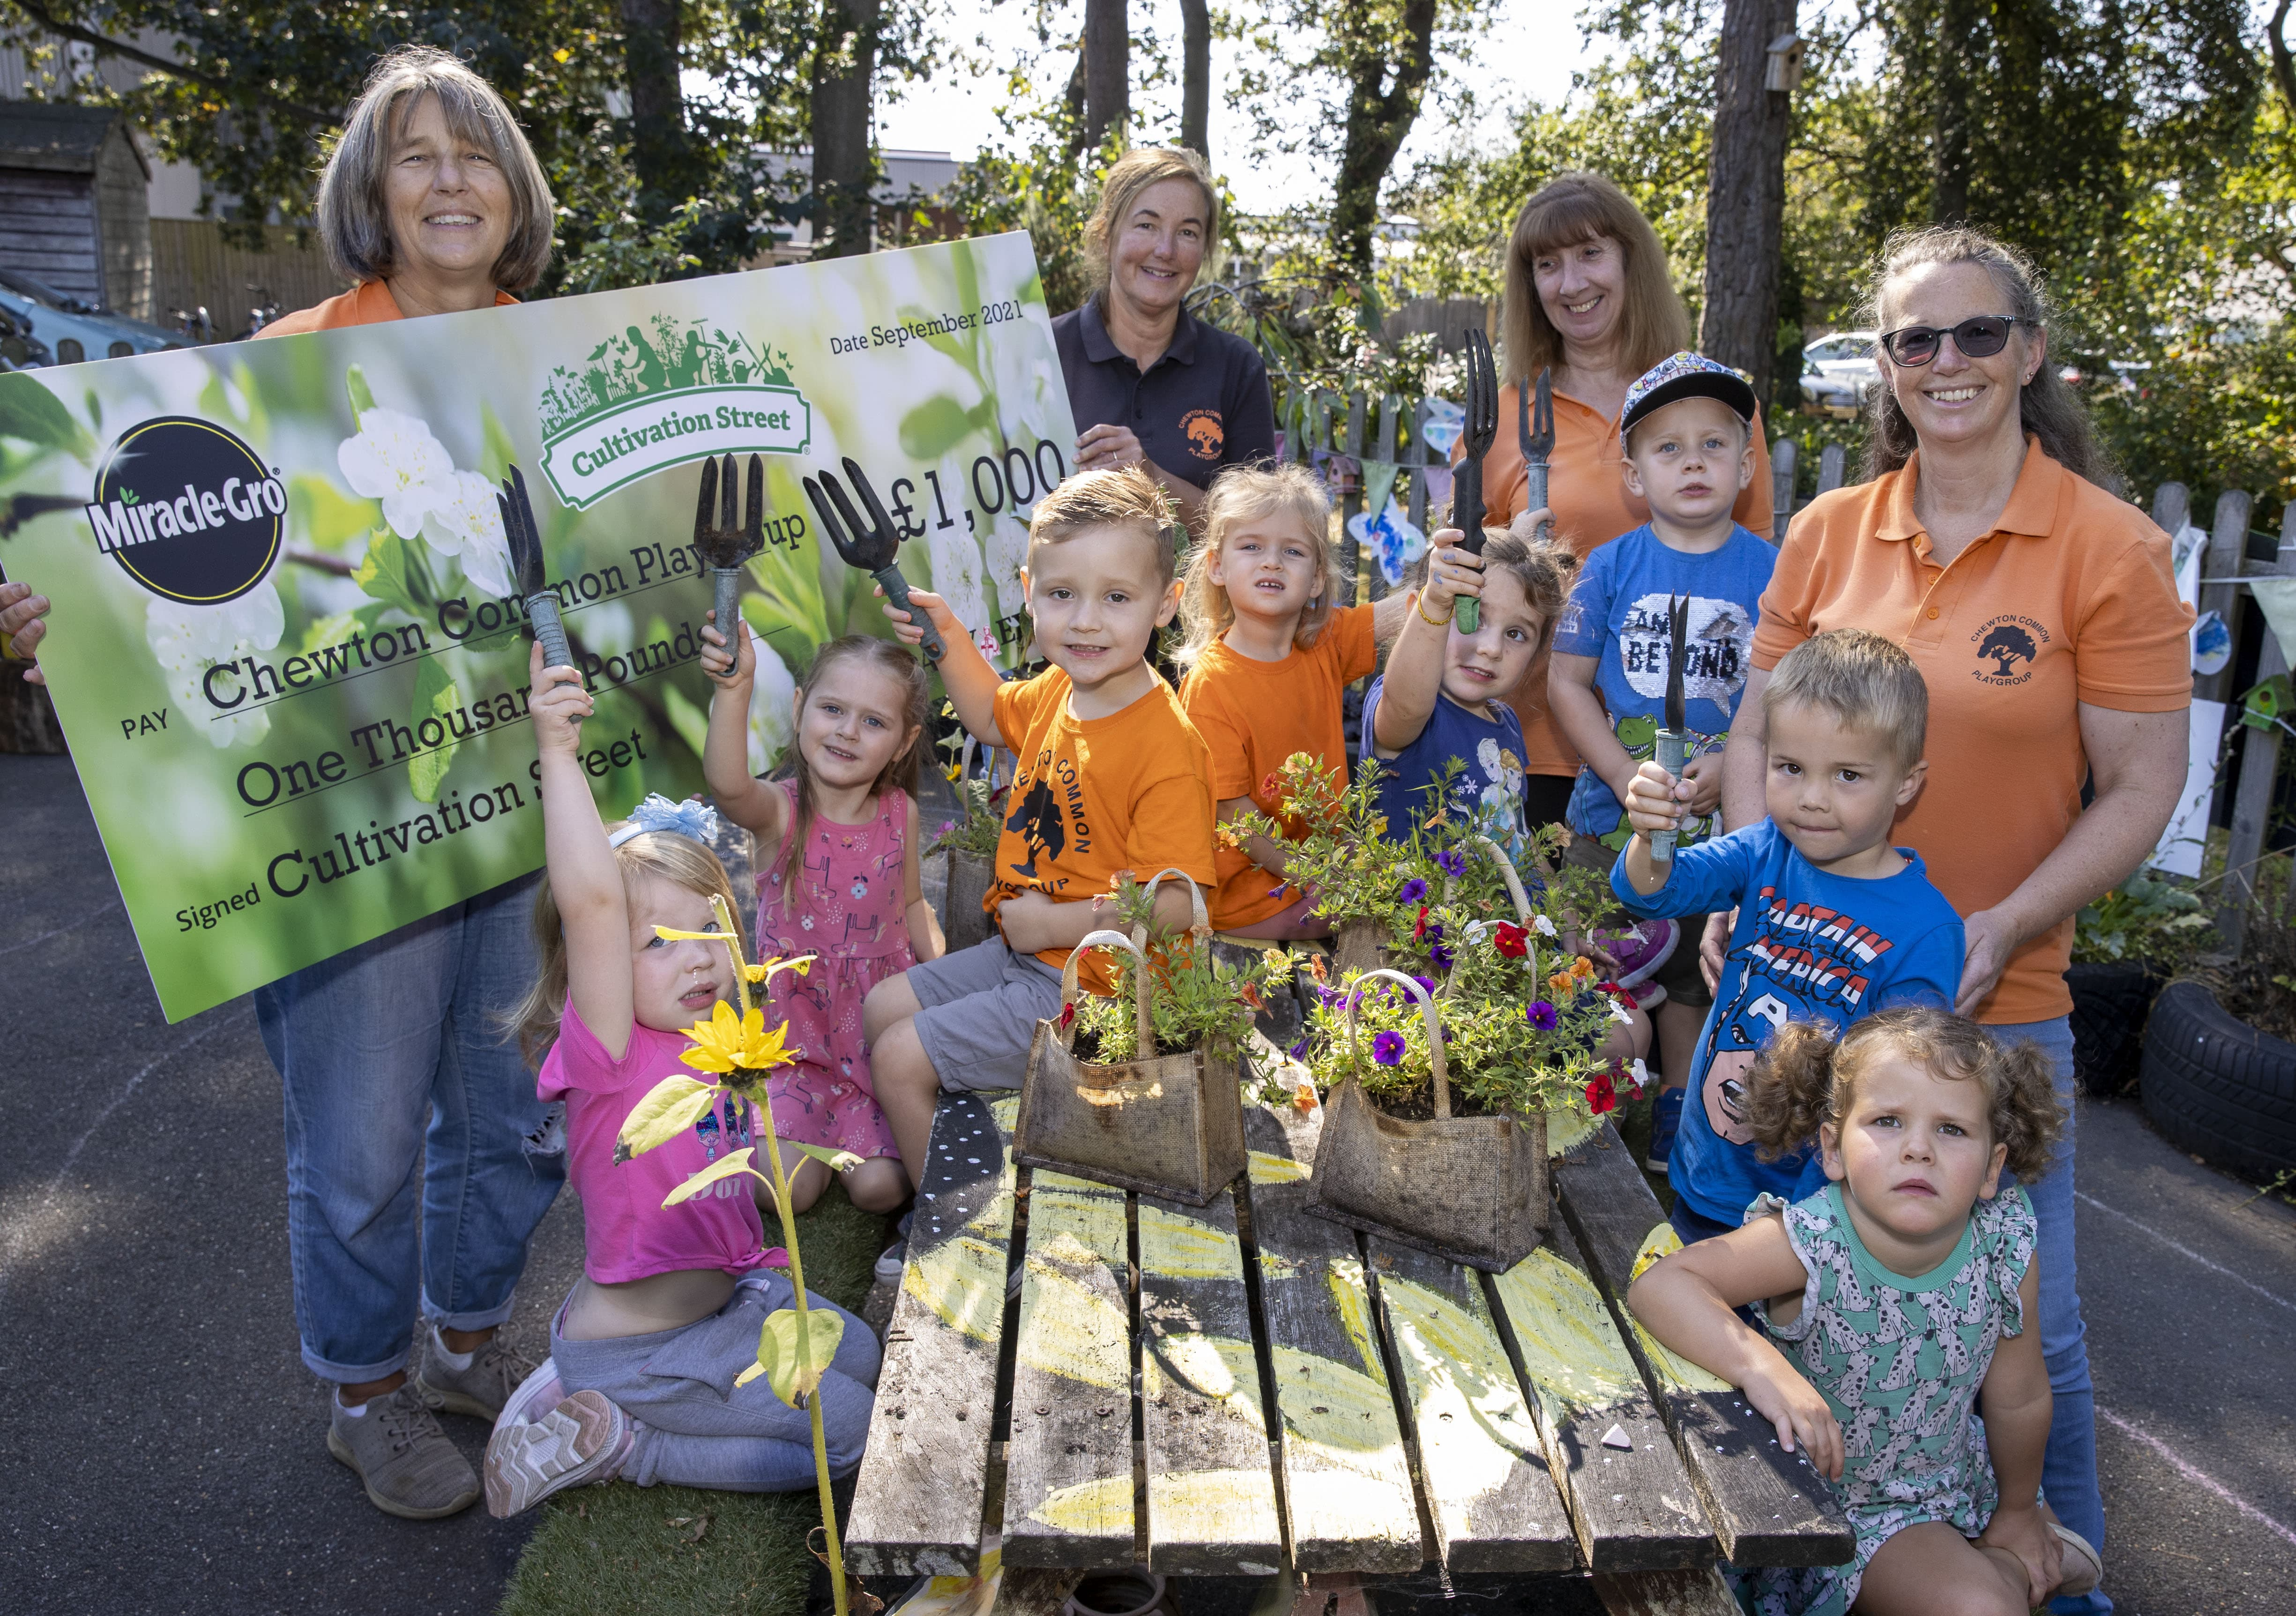 Cultivation Street winners. Helen Dow (left) with her team & some of the children, in the school garden at Chewton common playgroup, Walkford, nr Christchurch, Dorset.Picture by Steve Reigate 22/9/2021